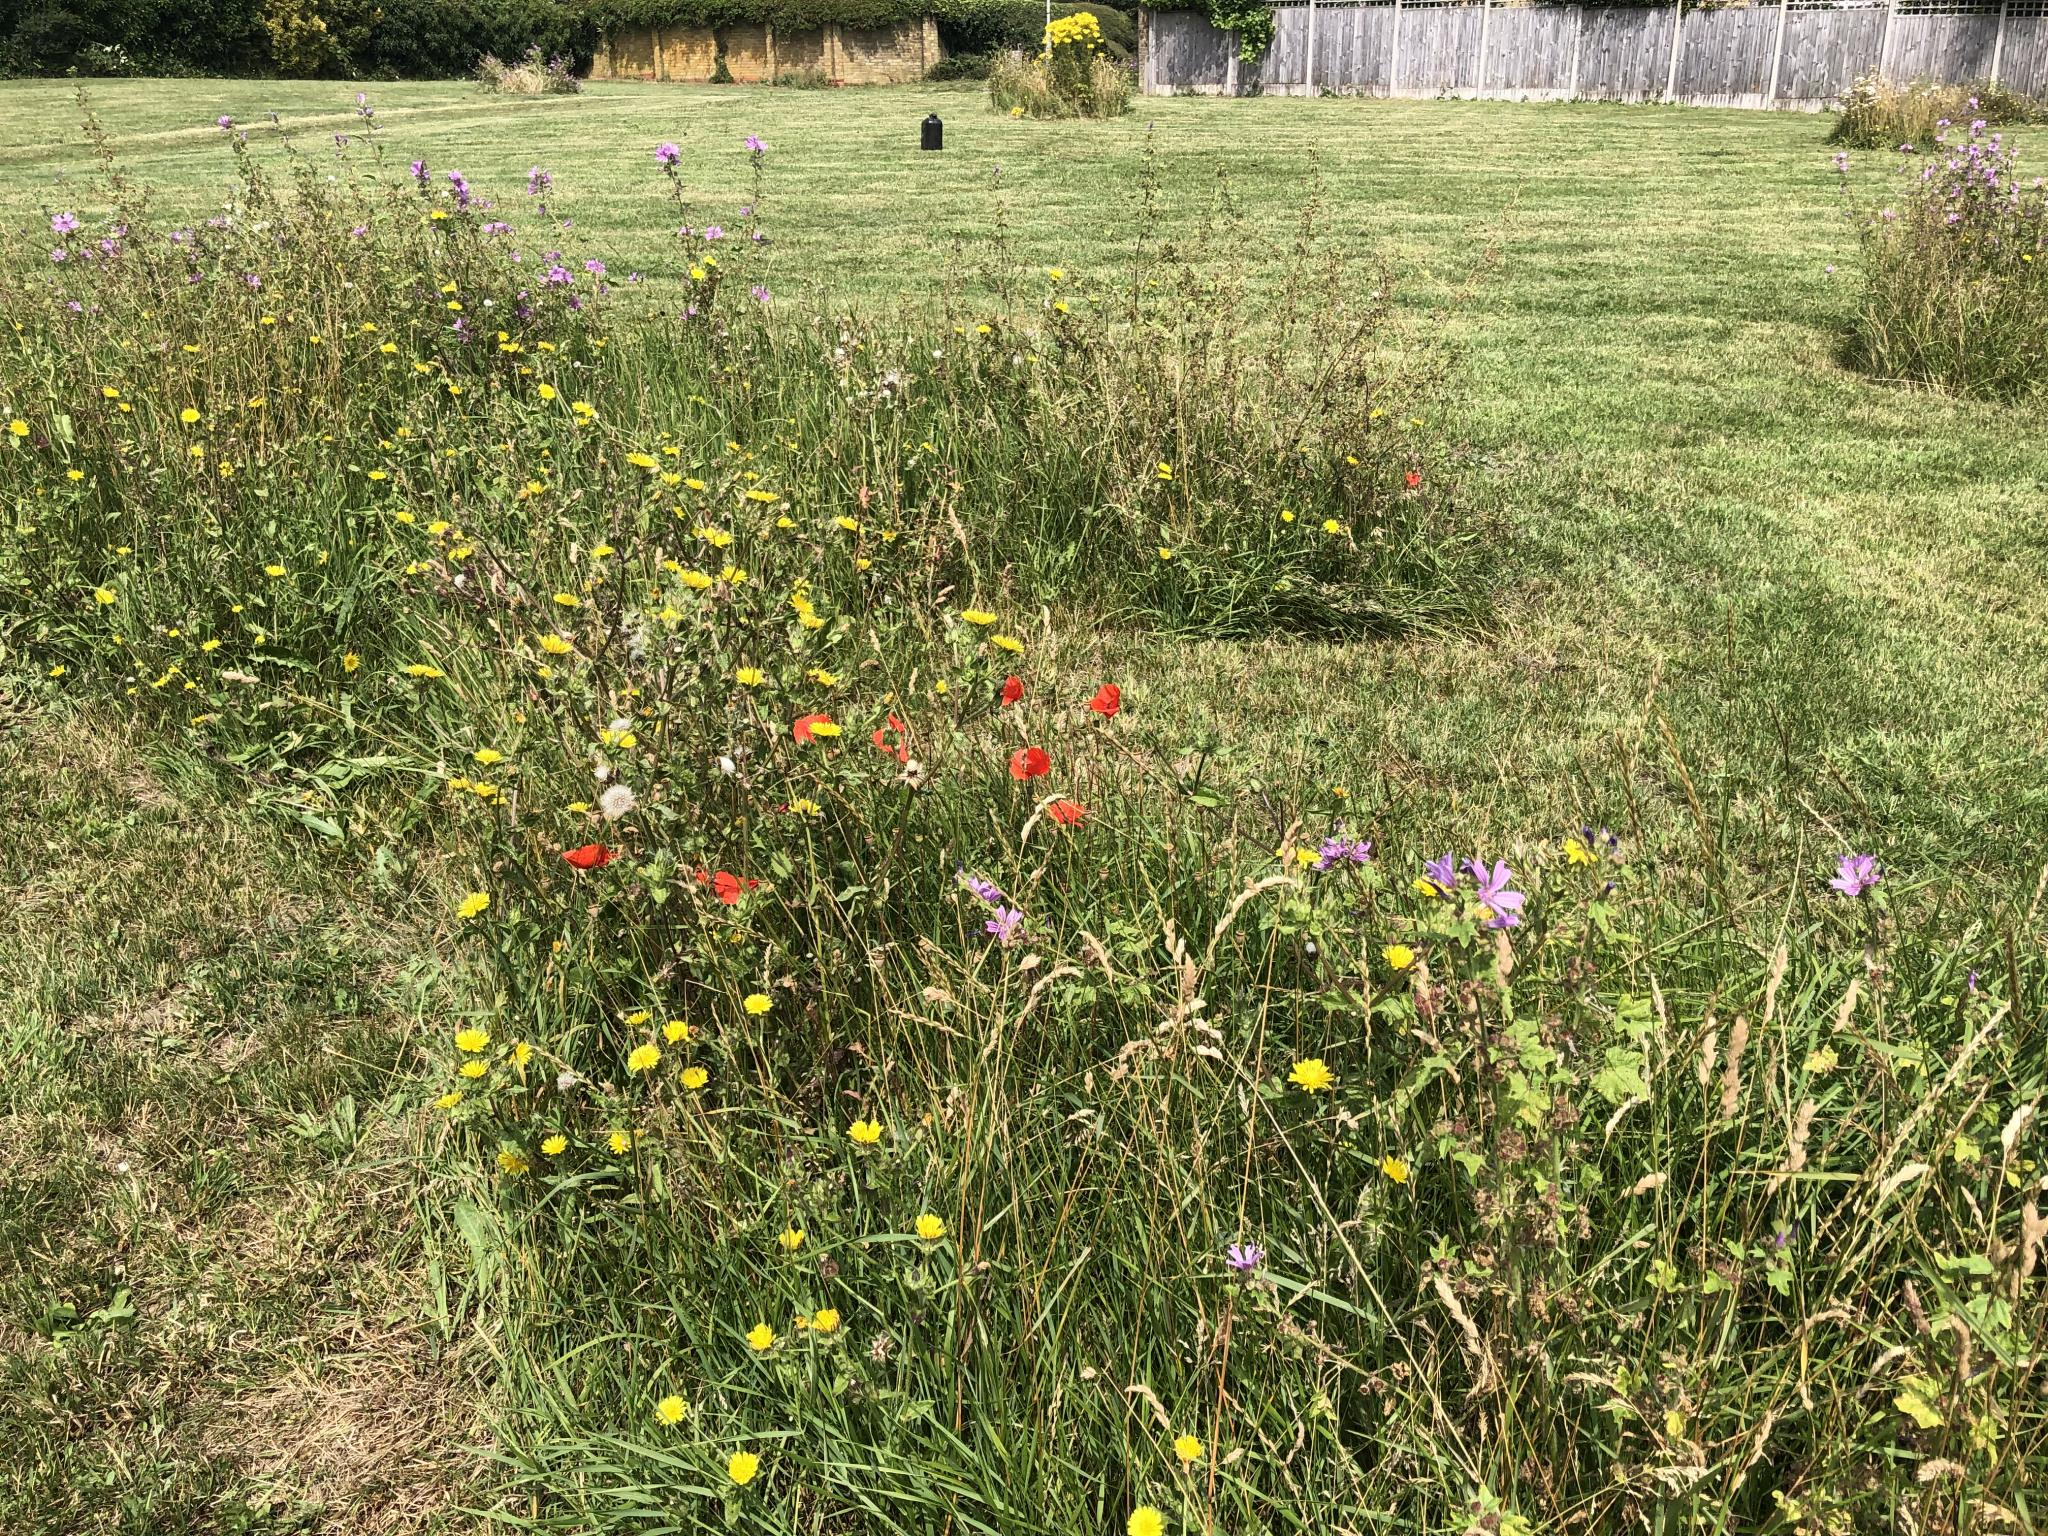 """""""Re-wilding"""" a patch of neglected land in the UK-458ad22a-65e3-49b5-8454-86654156399e-jpg"""